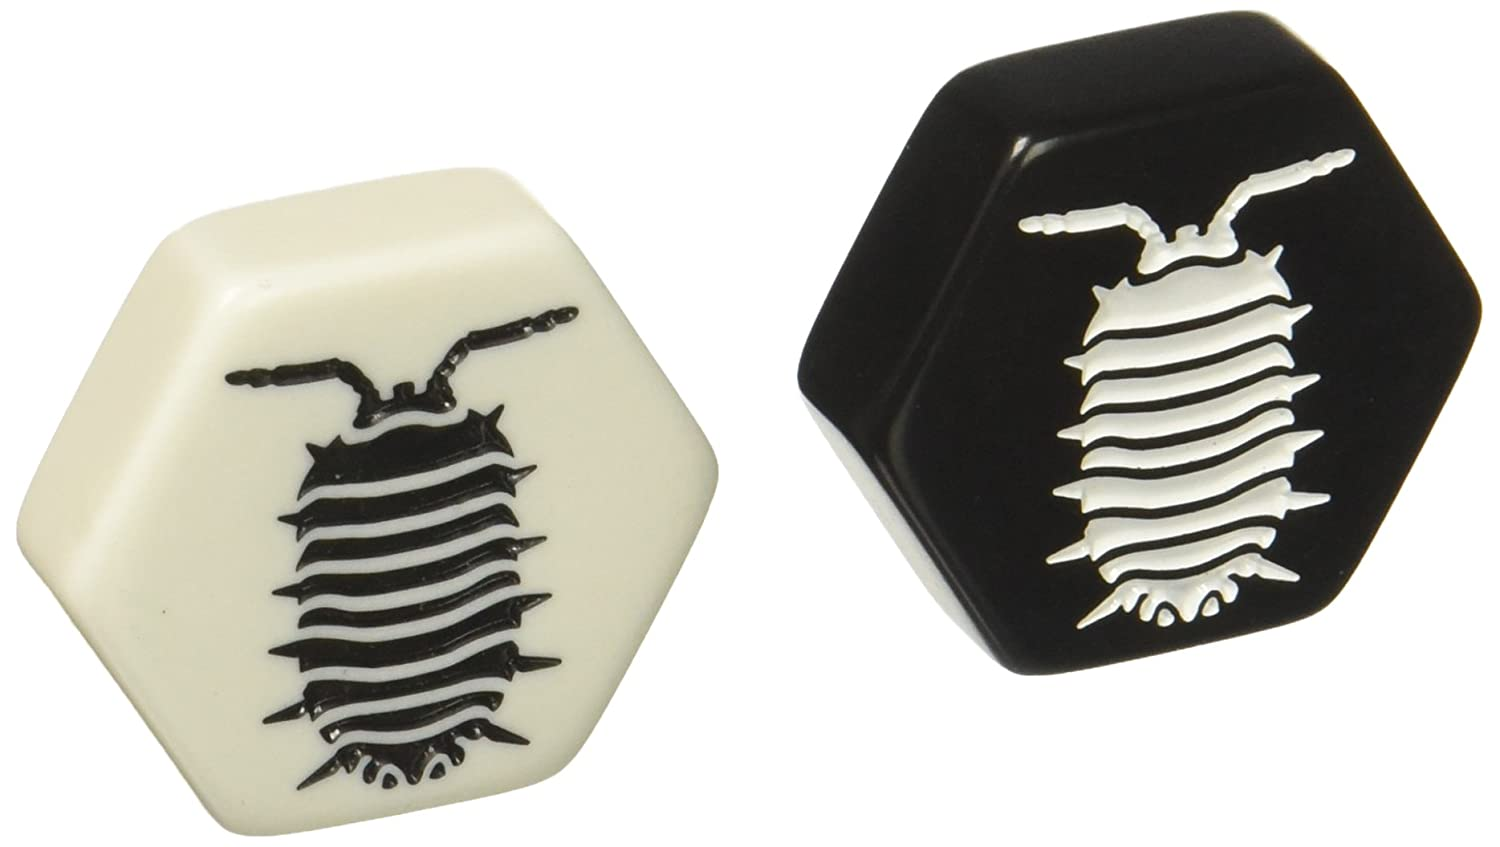 Pillbug Carbon Expansion Board Game Renegade Game Studios TCI016 Team Components Hive